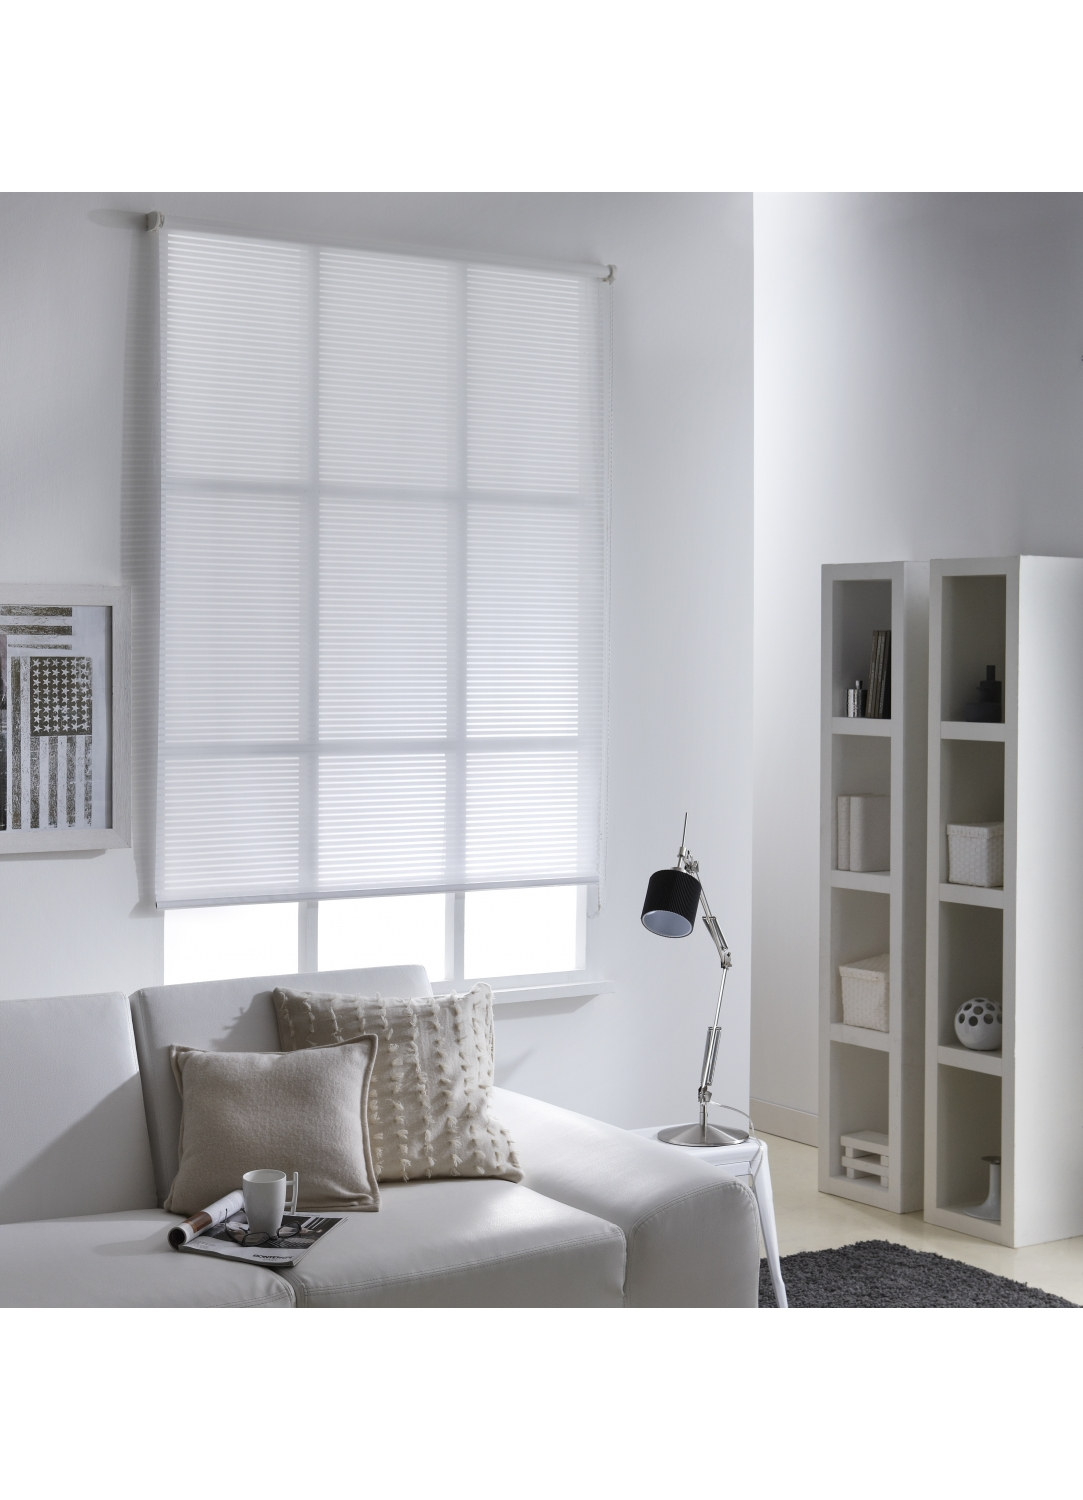 store enrouleur voile rayure ajour blanc homemaison. Black Bedroom Furniture Sets. Home Design Ideas